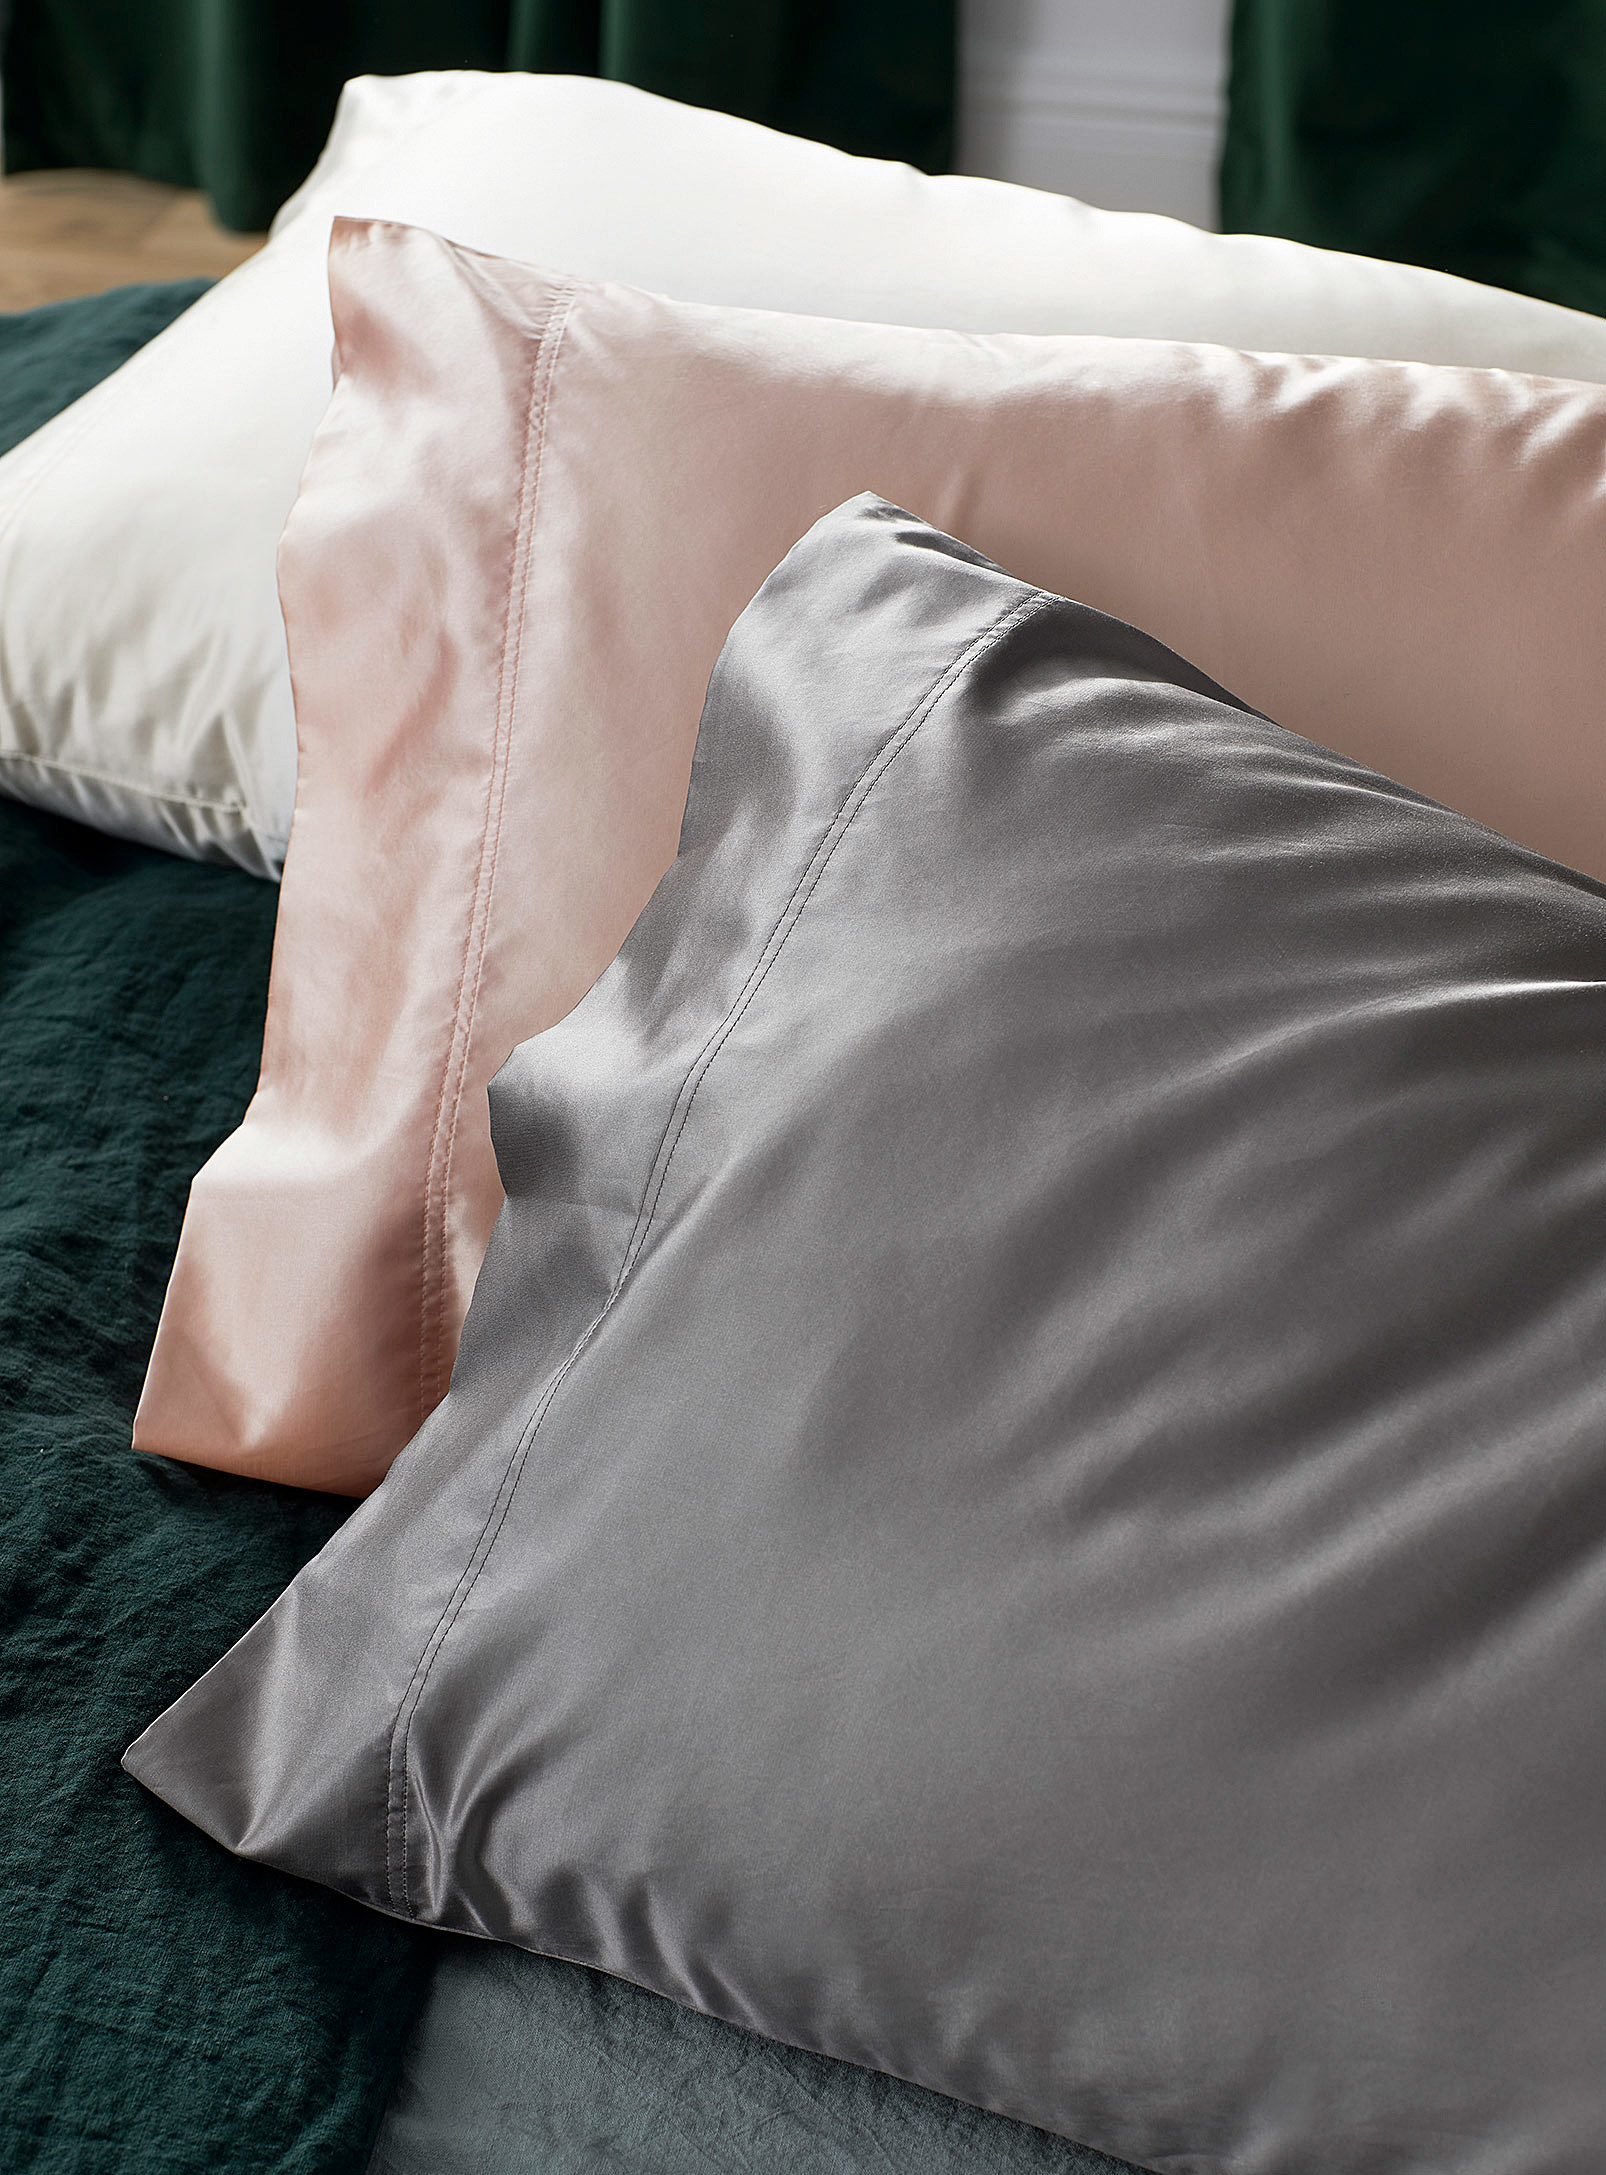 A trio of silky pillowcases on a bed